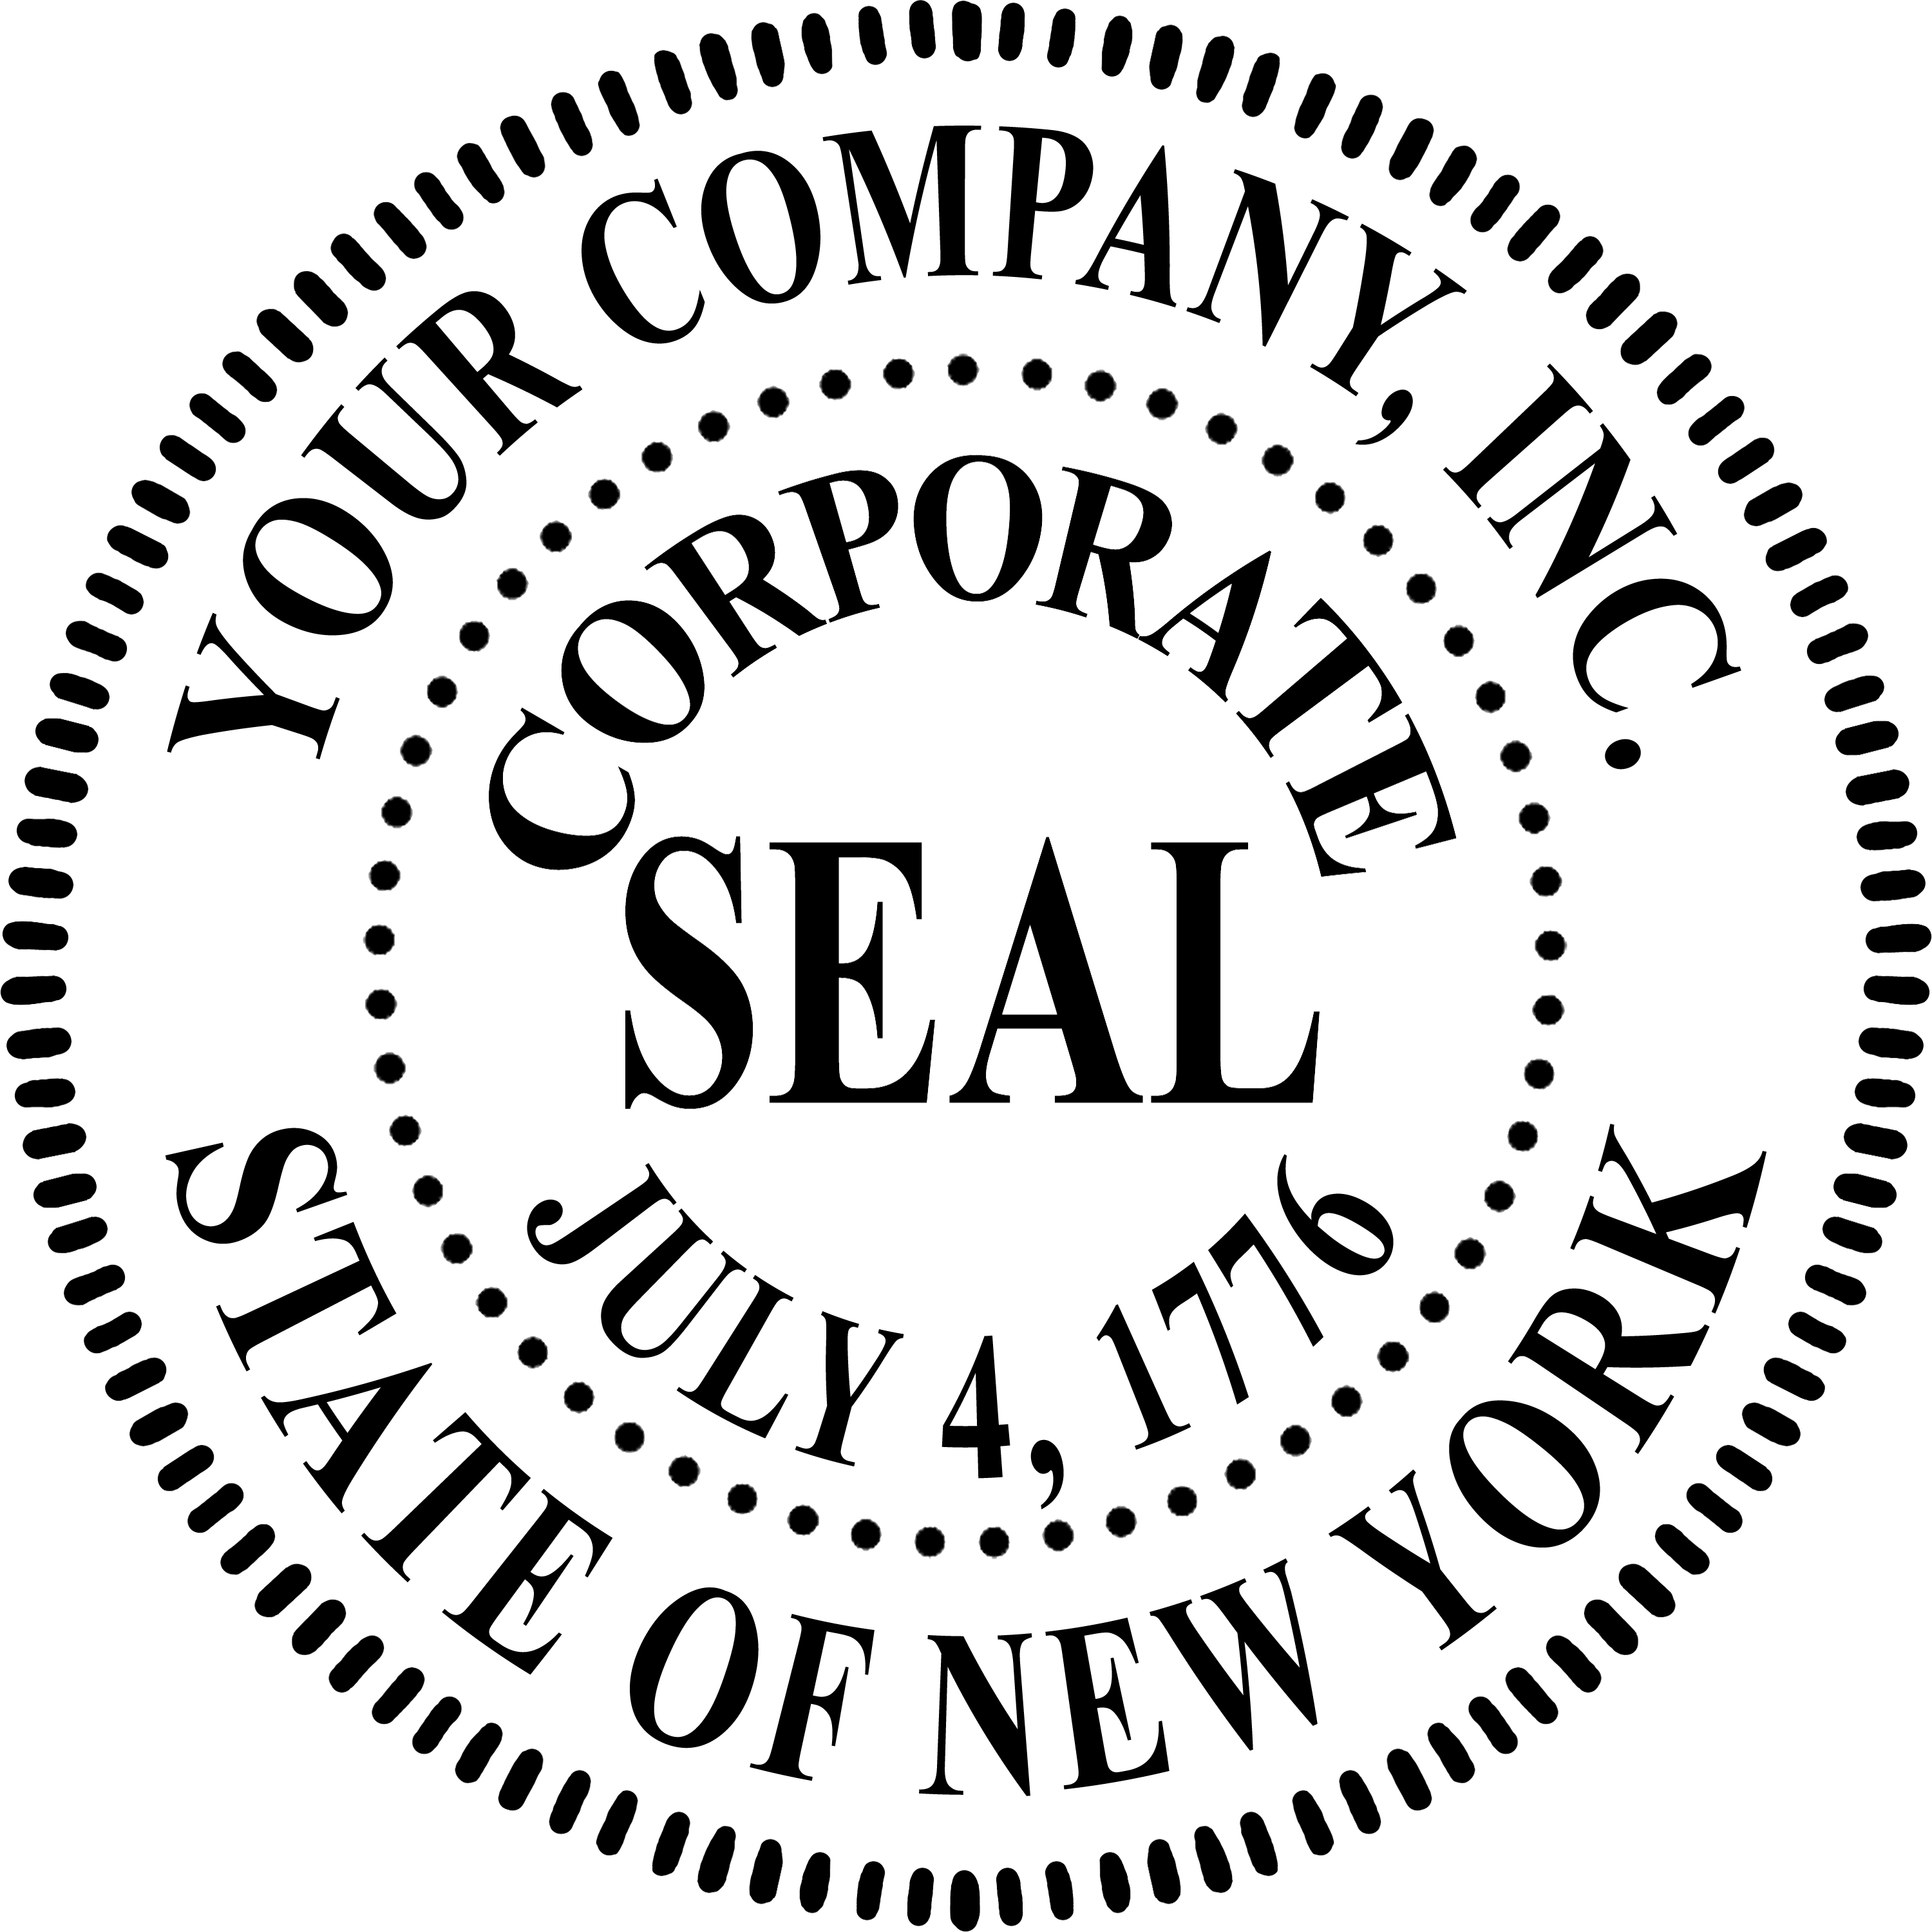 Corporate Seal Stamp Template